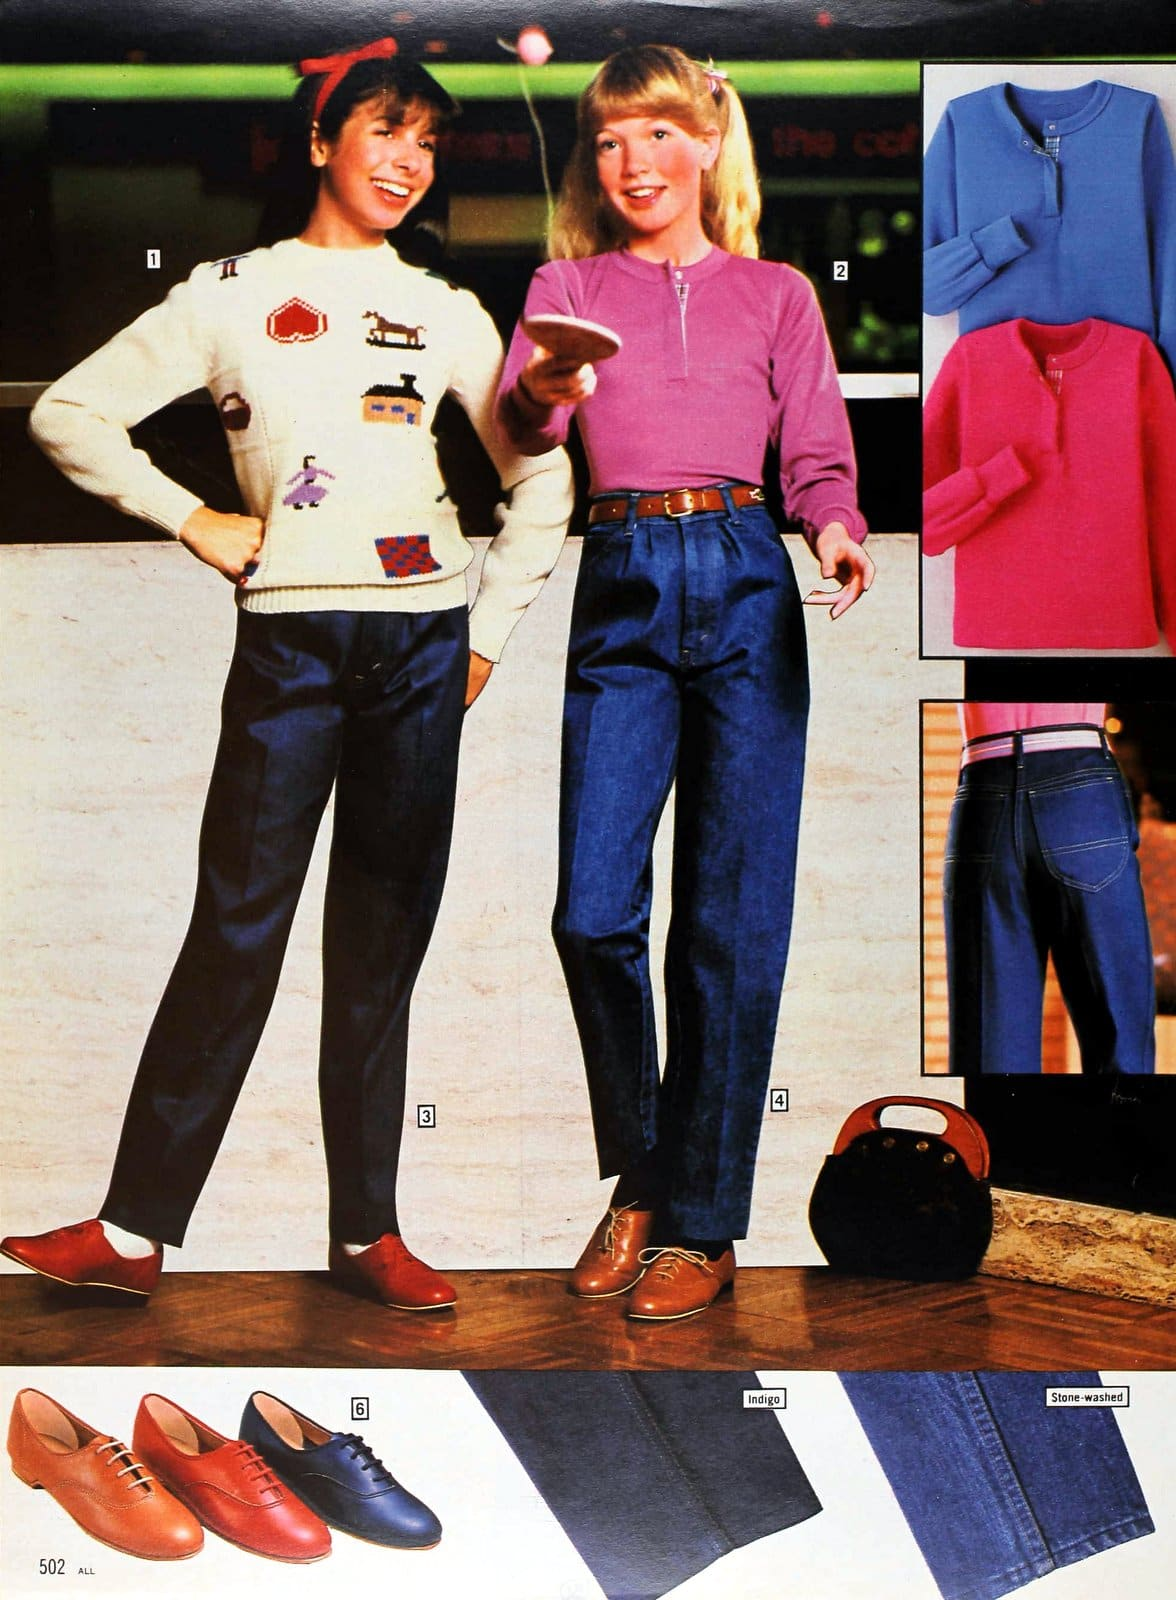 Fall styles for tweens and teens for 1982